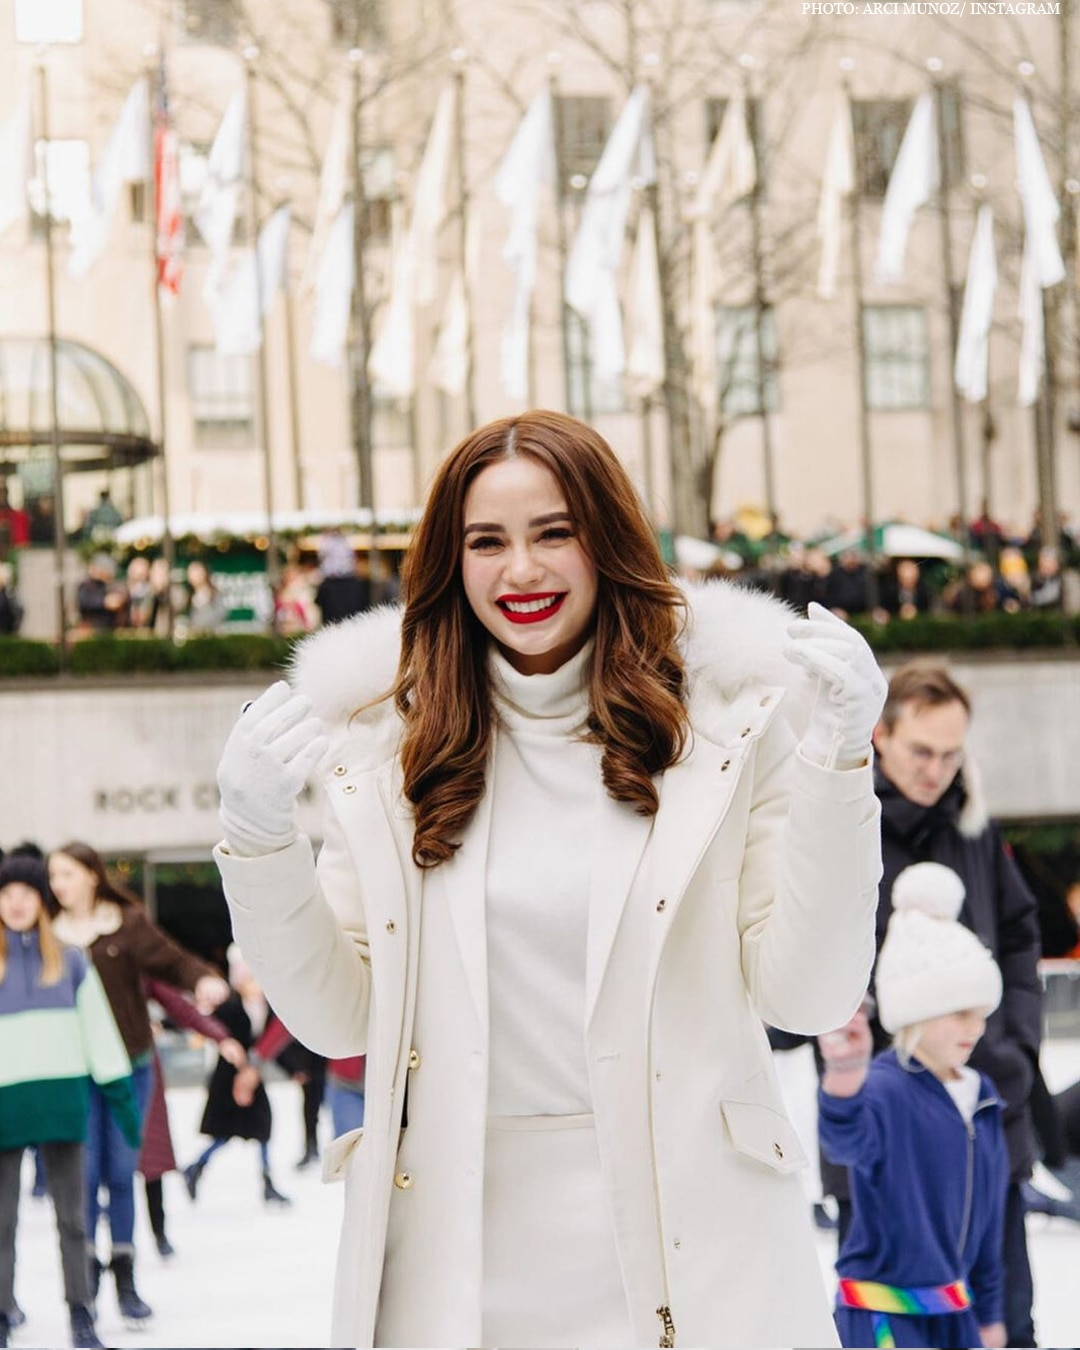 Arci in New York